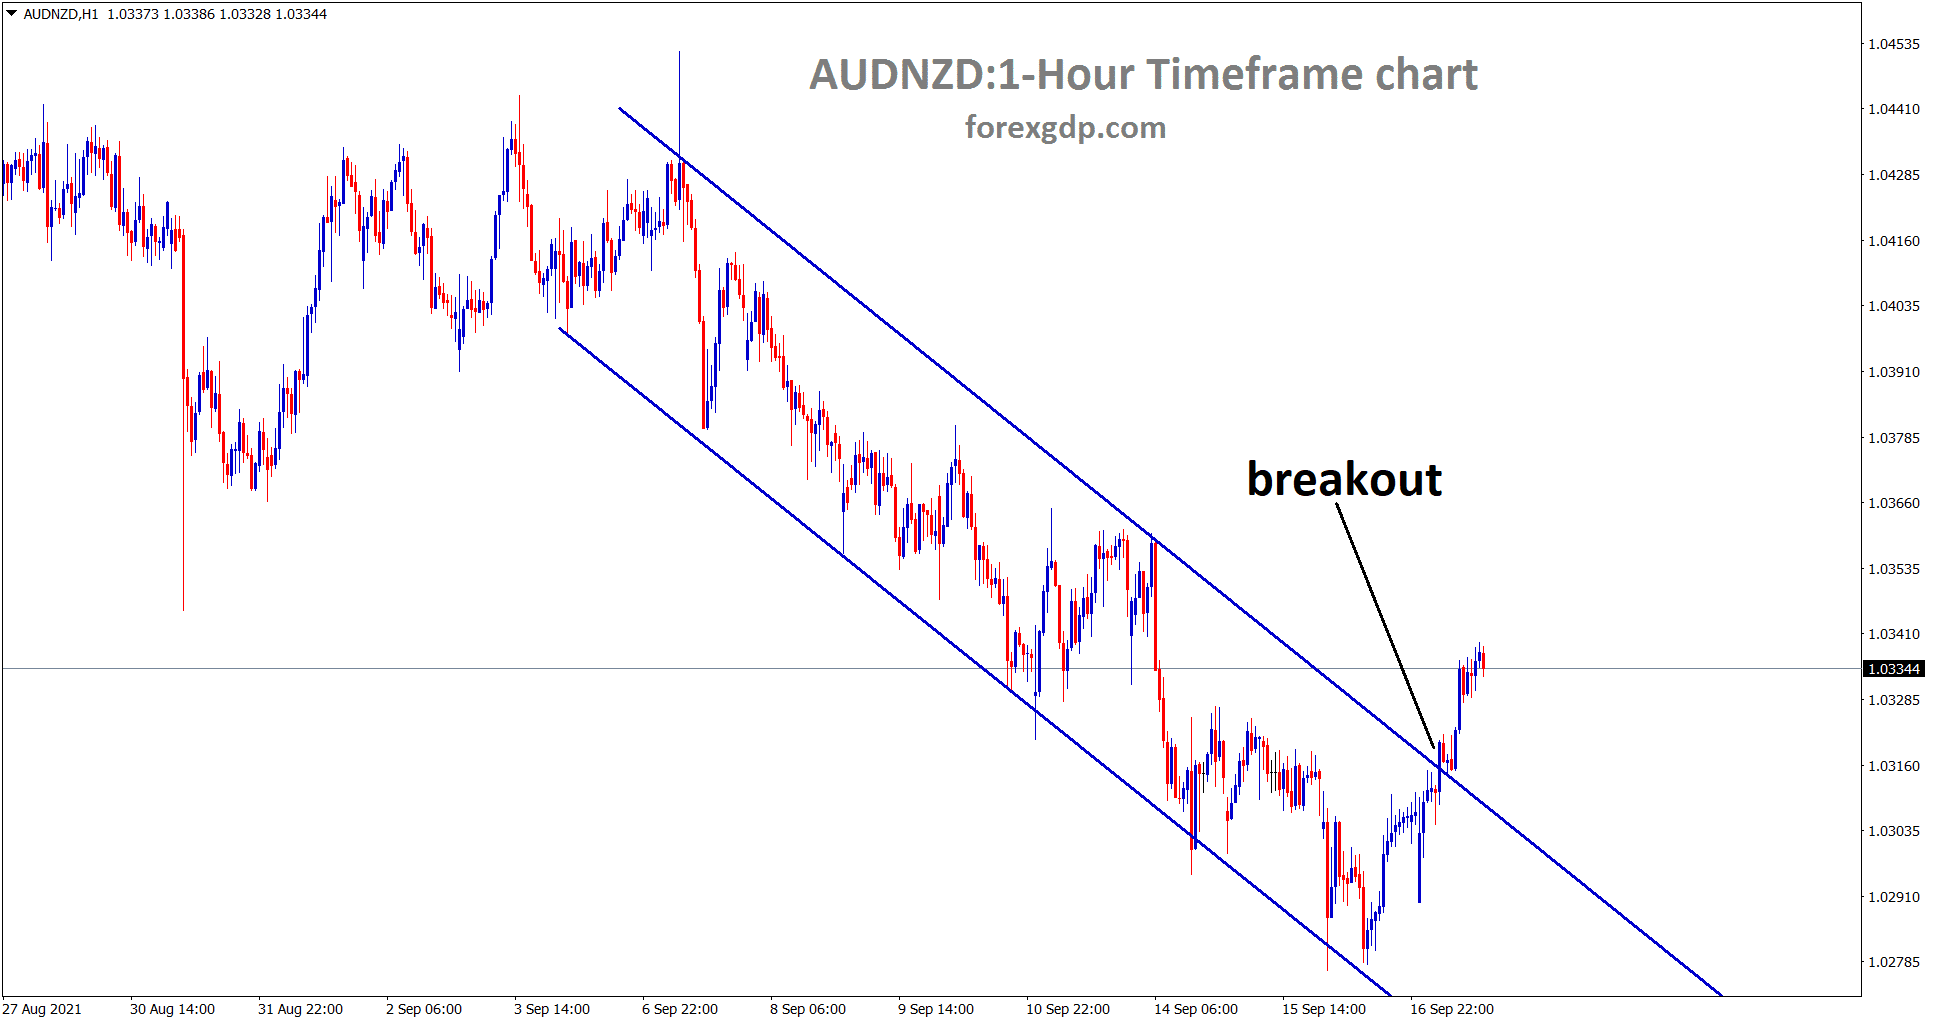 AUDNZD has broken the top of the descending channel in the 1 hour timeframe